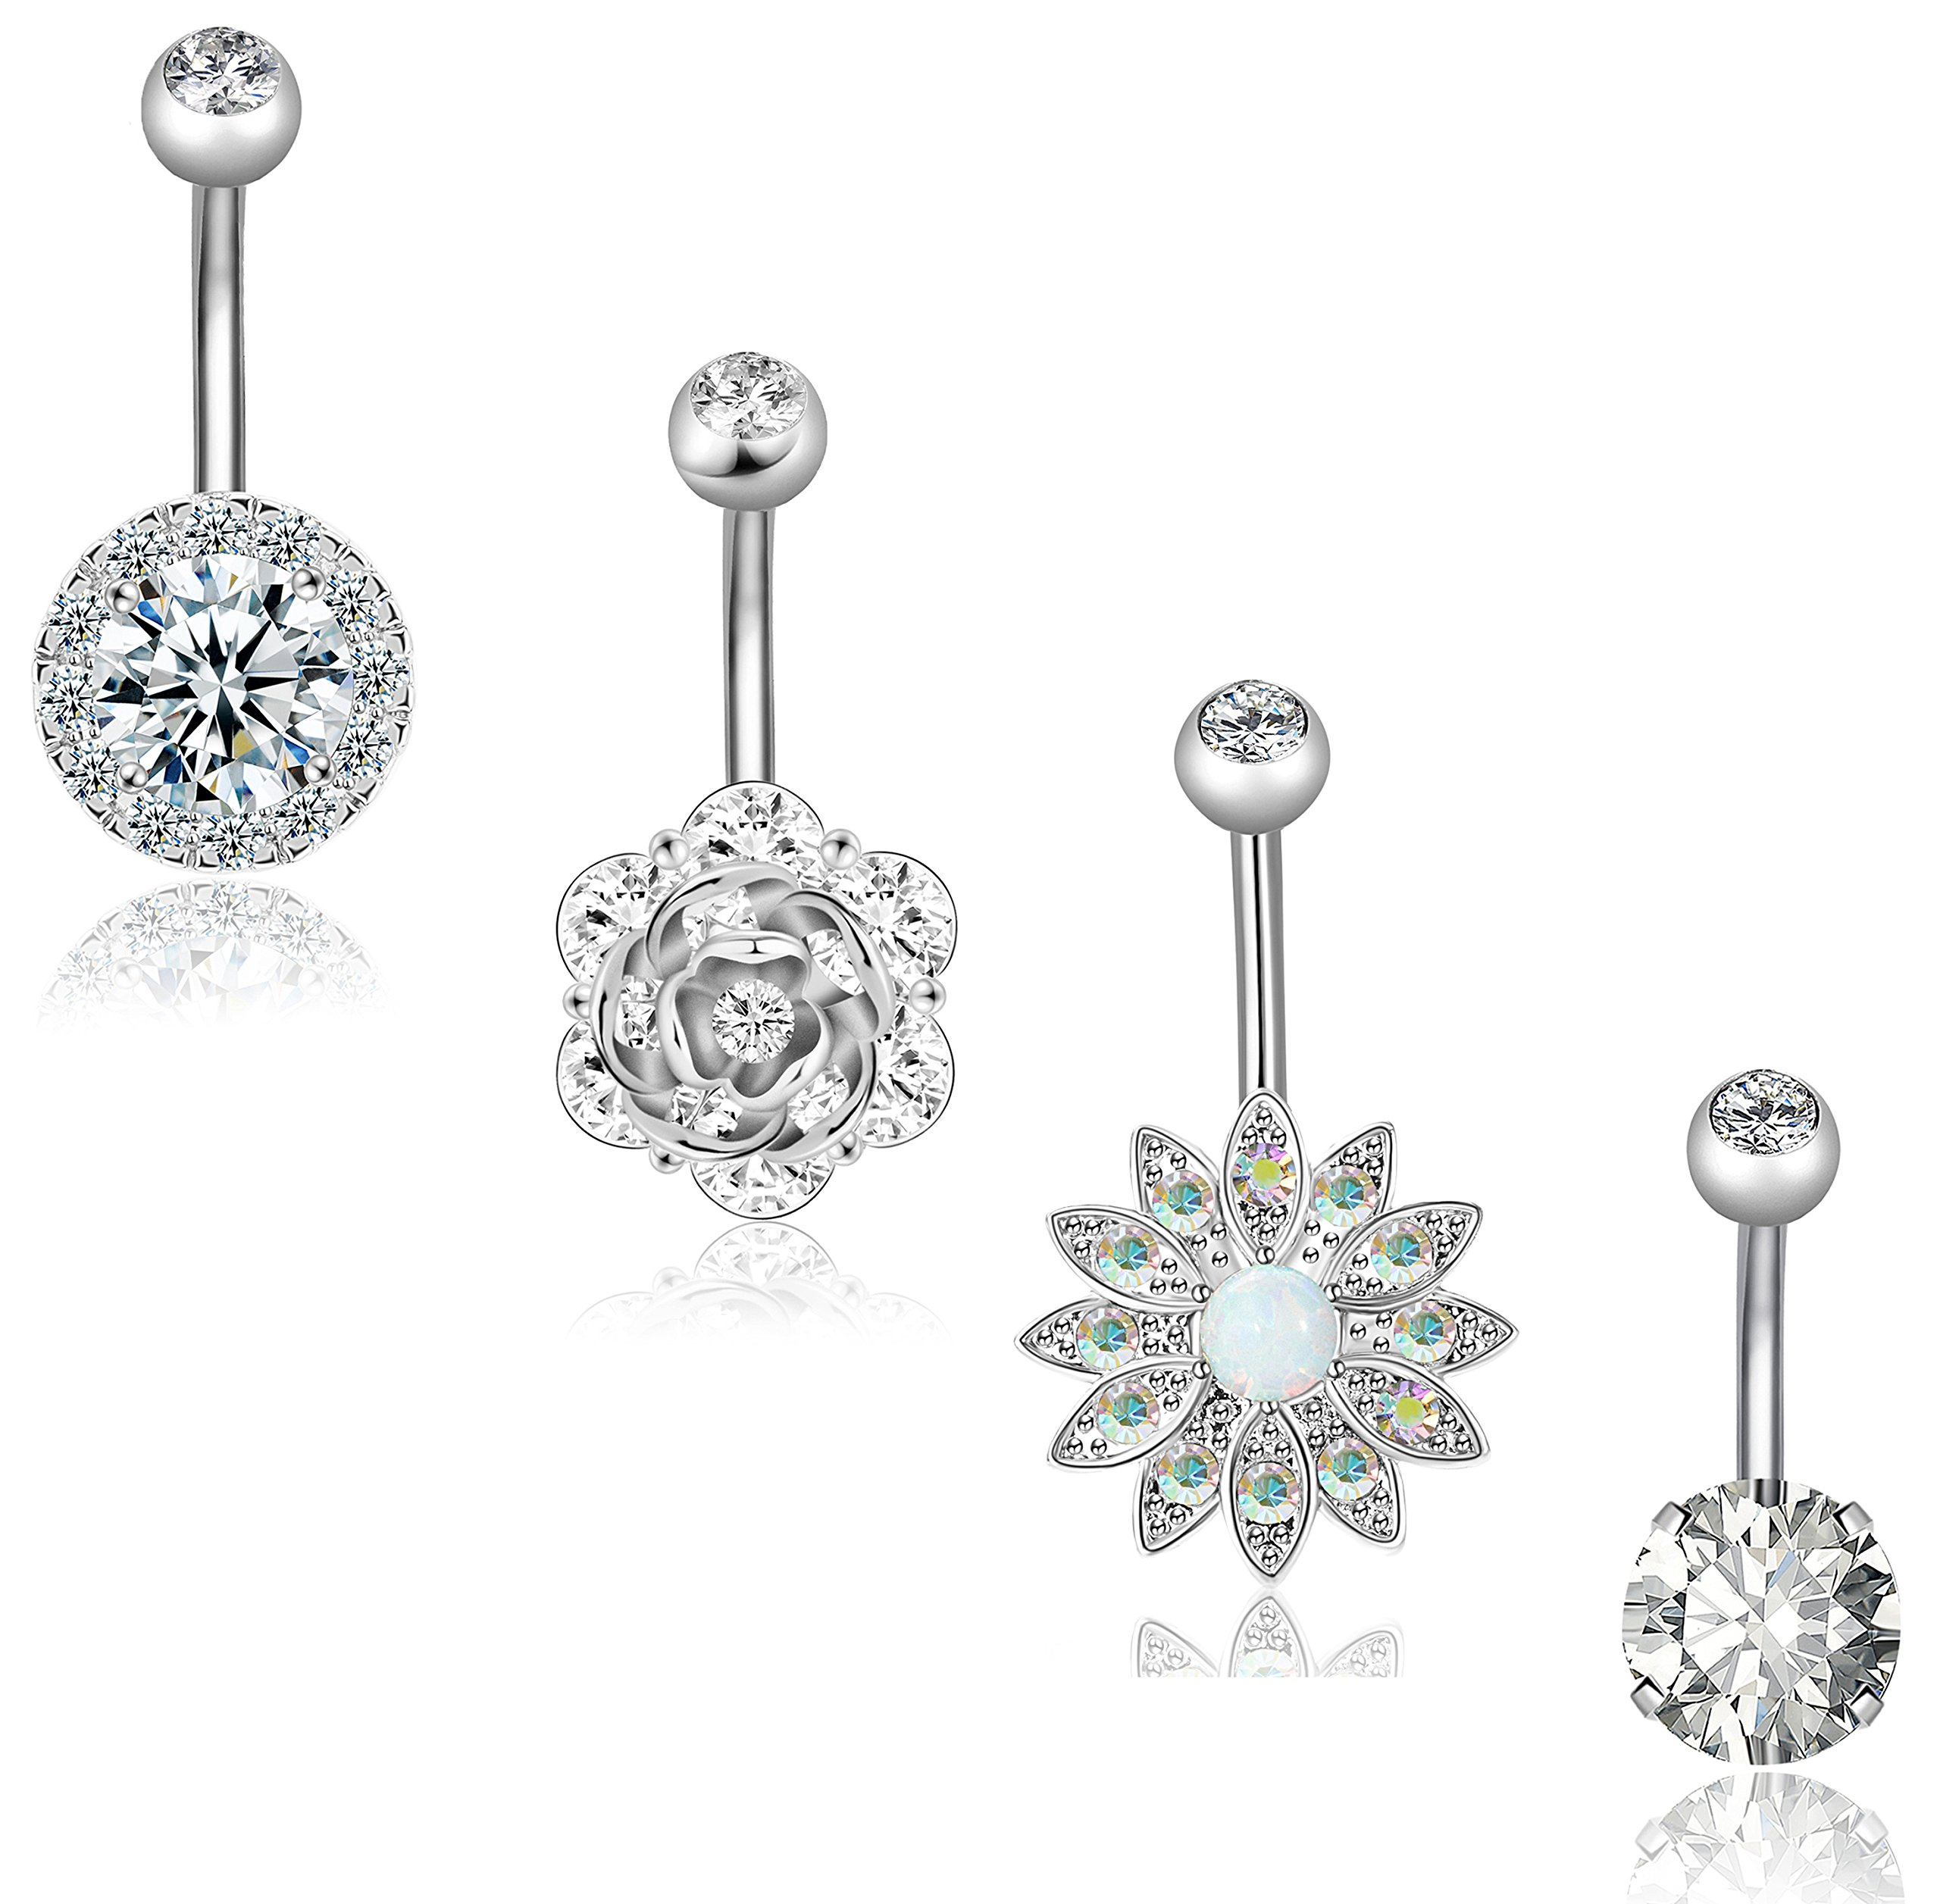 REVOLIA 4Pcs 14G Stainless Steel Belly Button Rings for Women Girls Navel Rings CZ Body Piercing Jewelry